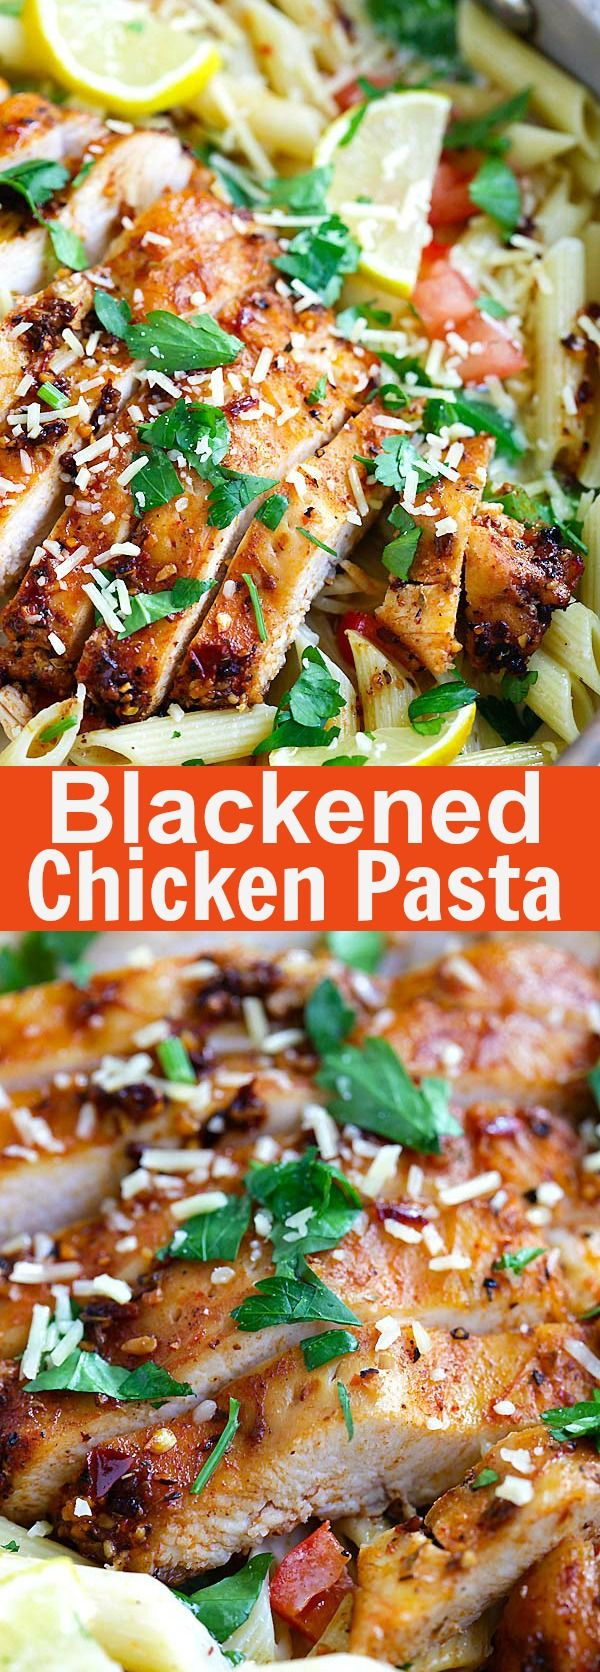 Blackened Chicken Pasta – Creamy pasta with spicy blackened spice chicken breast. Family friendly dinner has never been so good | rasamalaysia.com